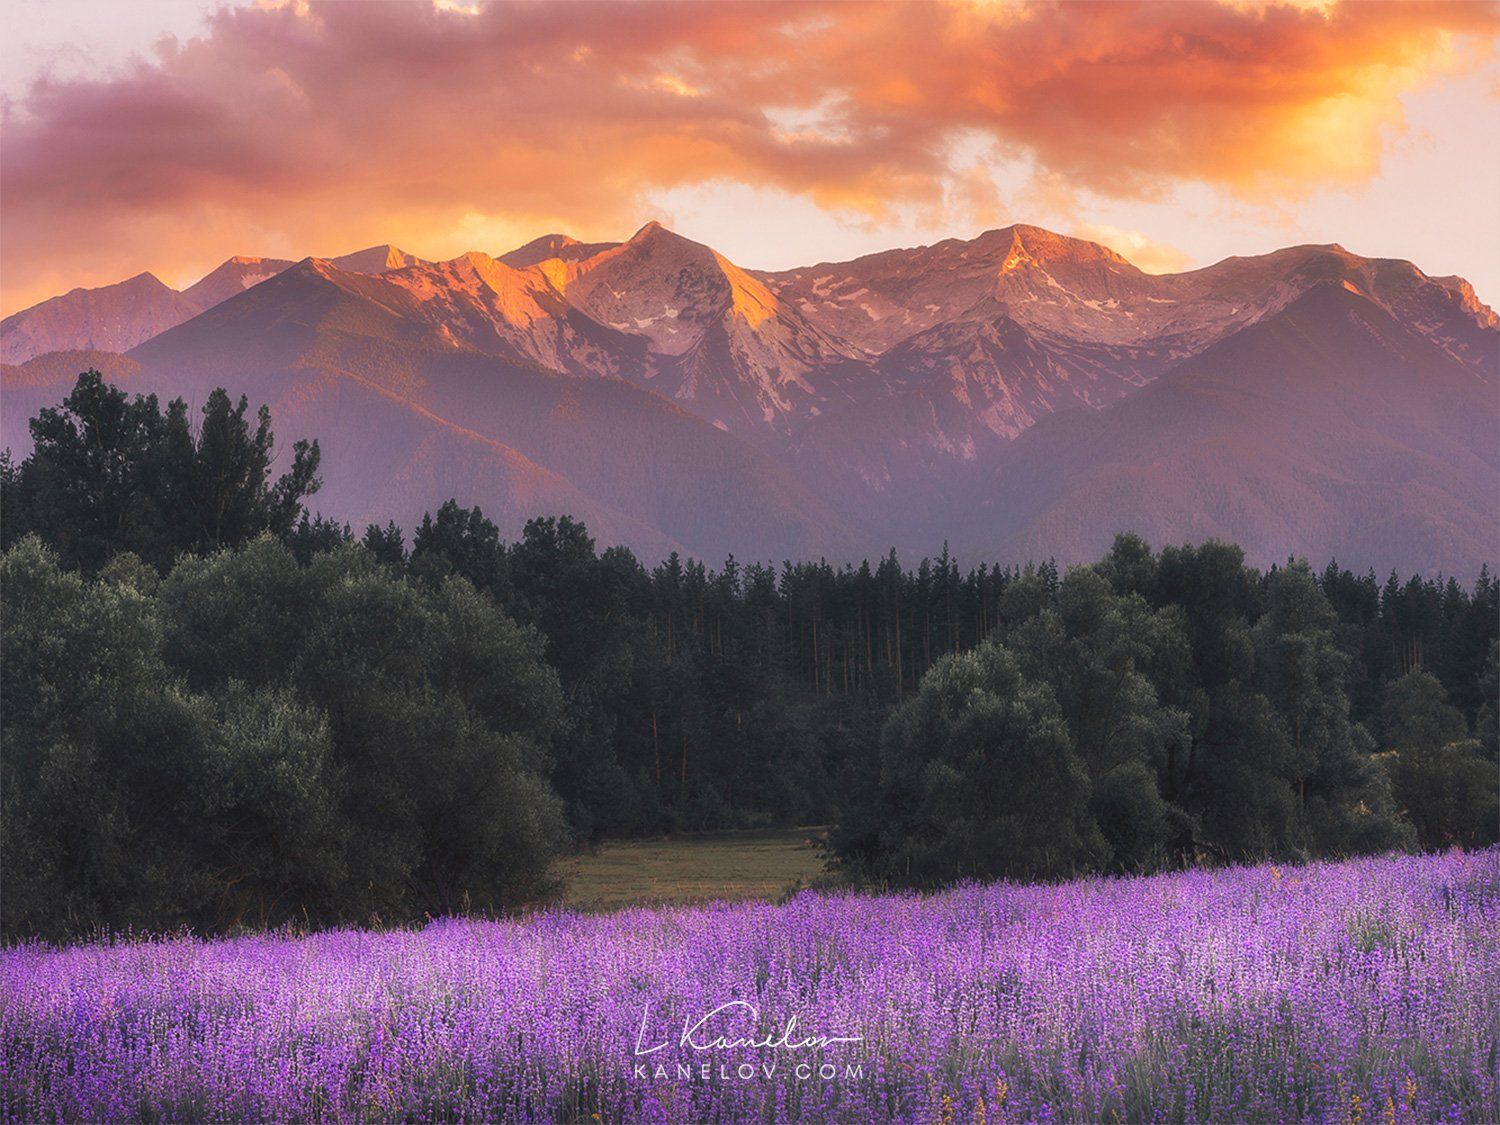 Lavender Field With Mountain In The Background Nature Landscape By Mountain Landscape Photography Landscape Photography Mountain Sunset